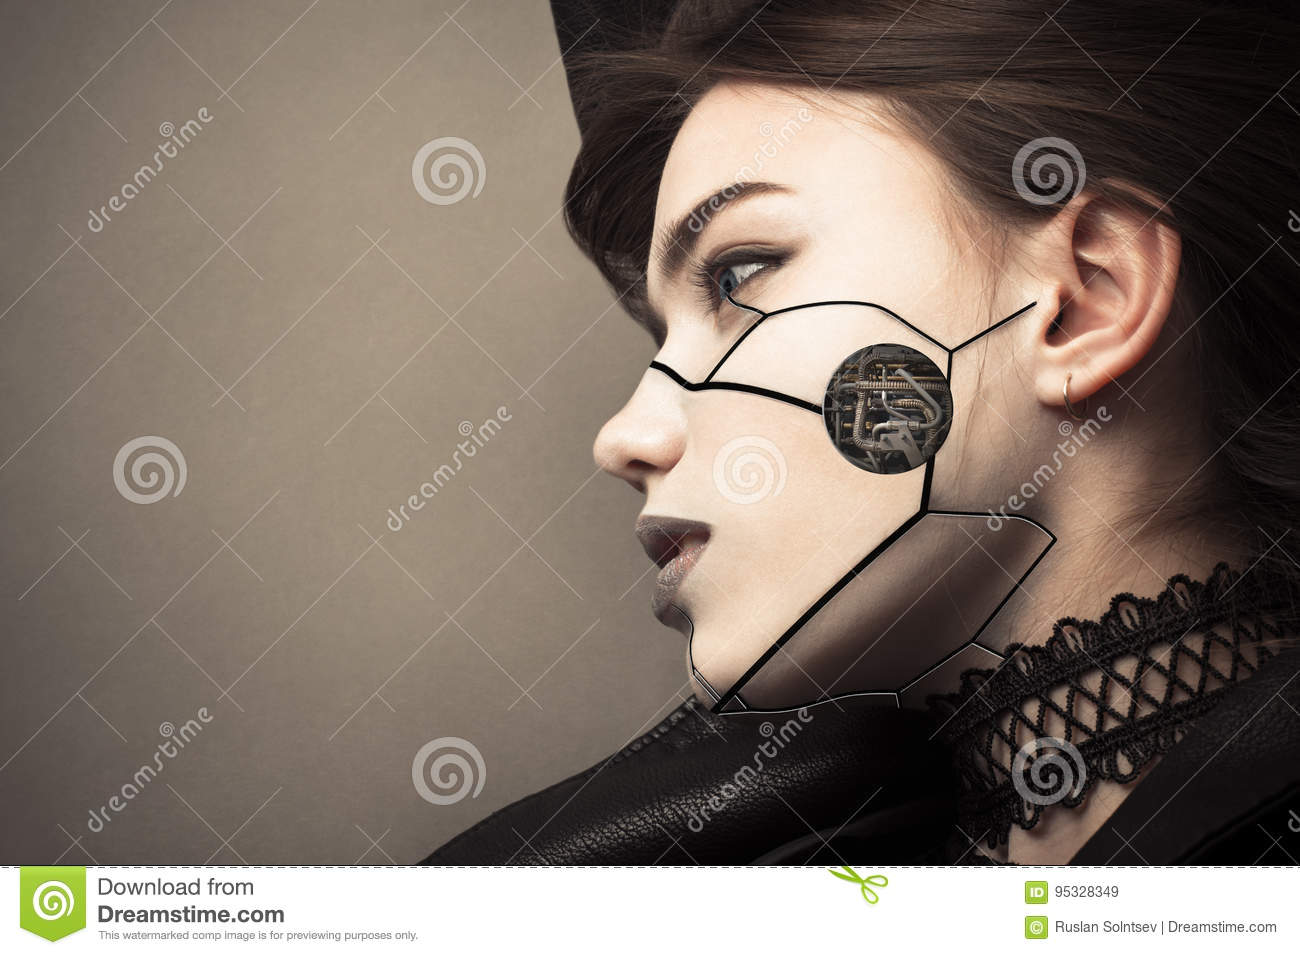 Beautiful profile face cyberpunk girl with fashion makeup